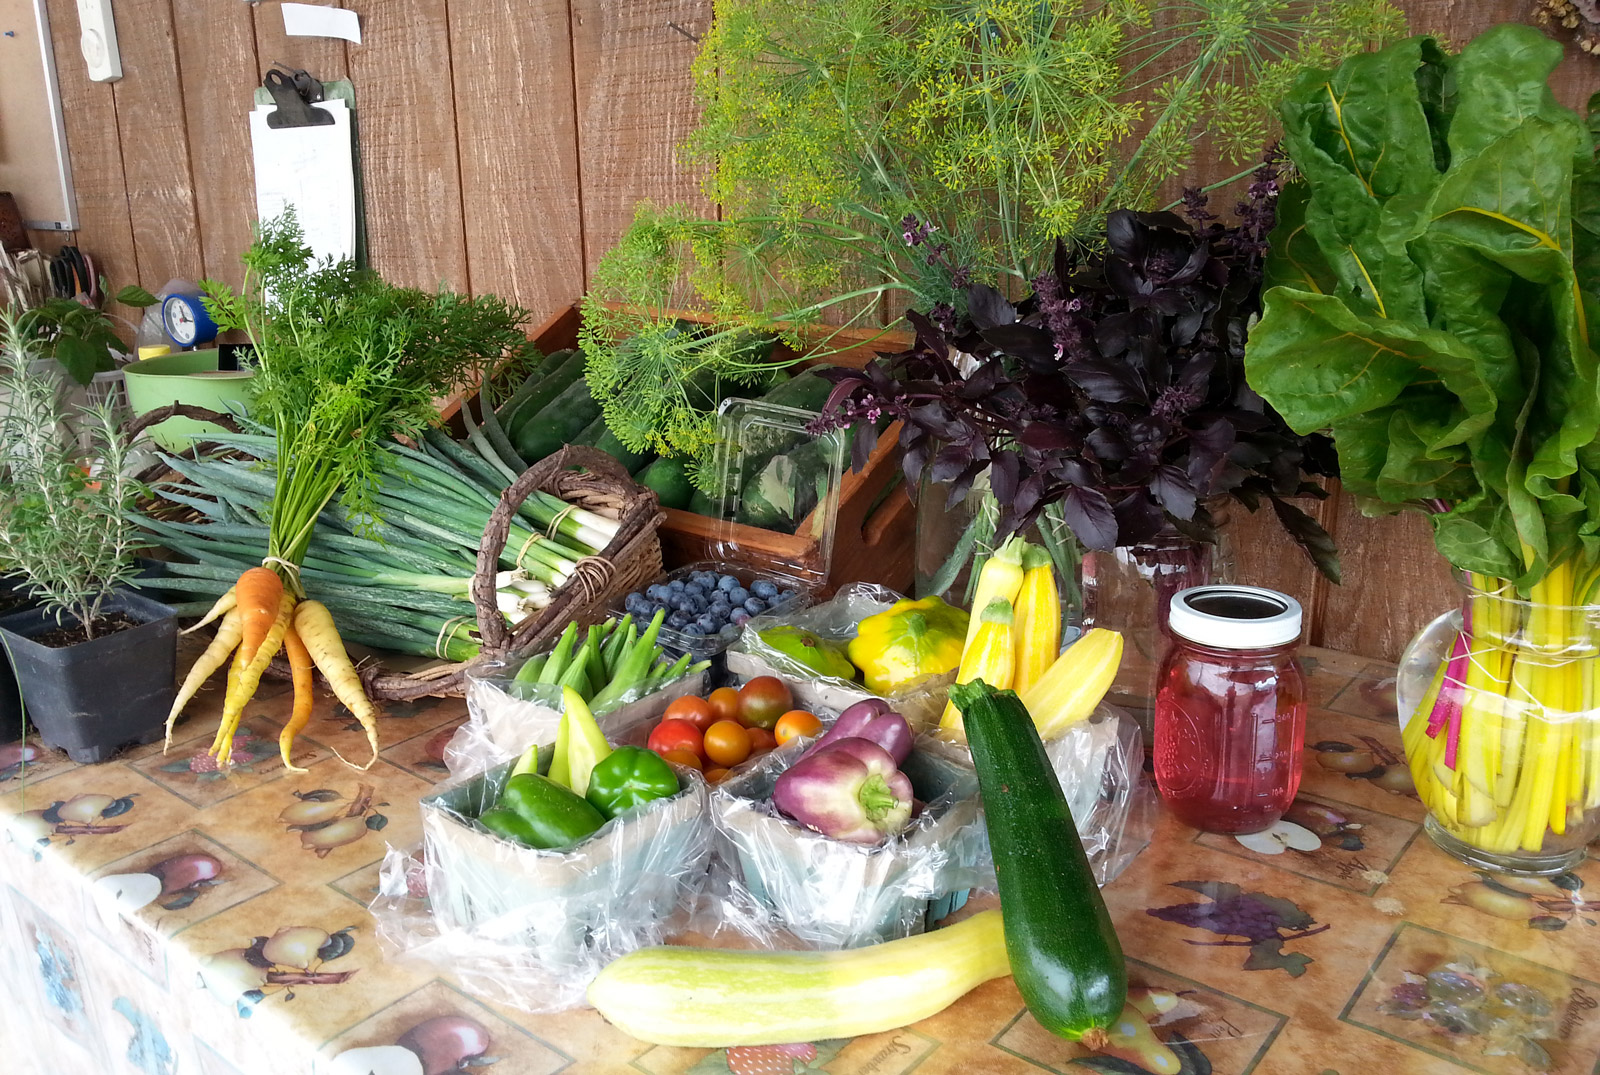 Small sample of the bounty from Mary Robert's Windcrest Farm